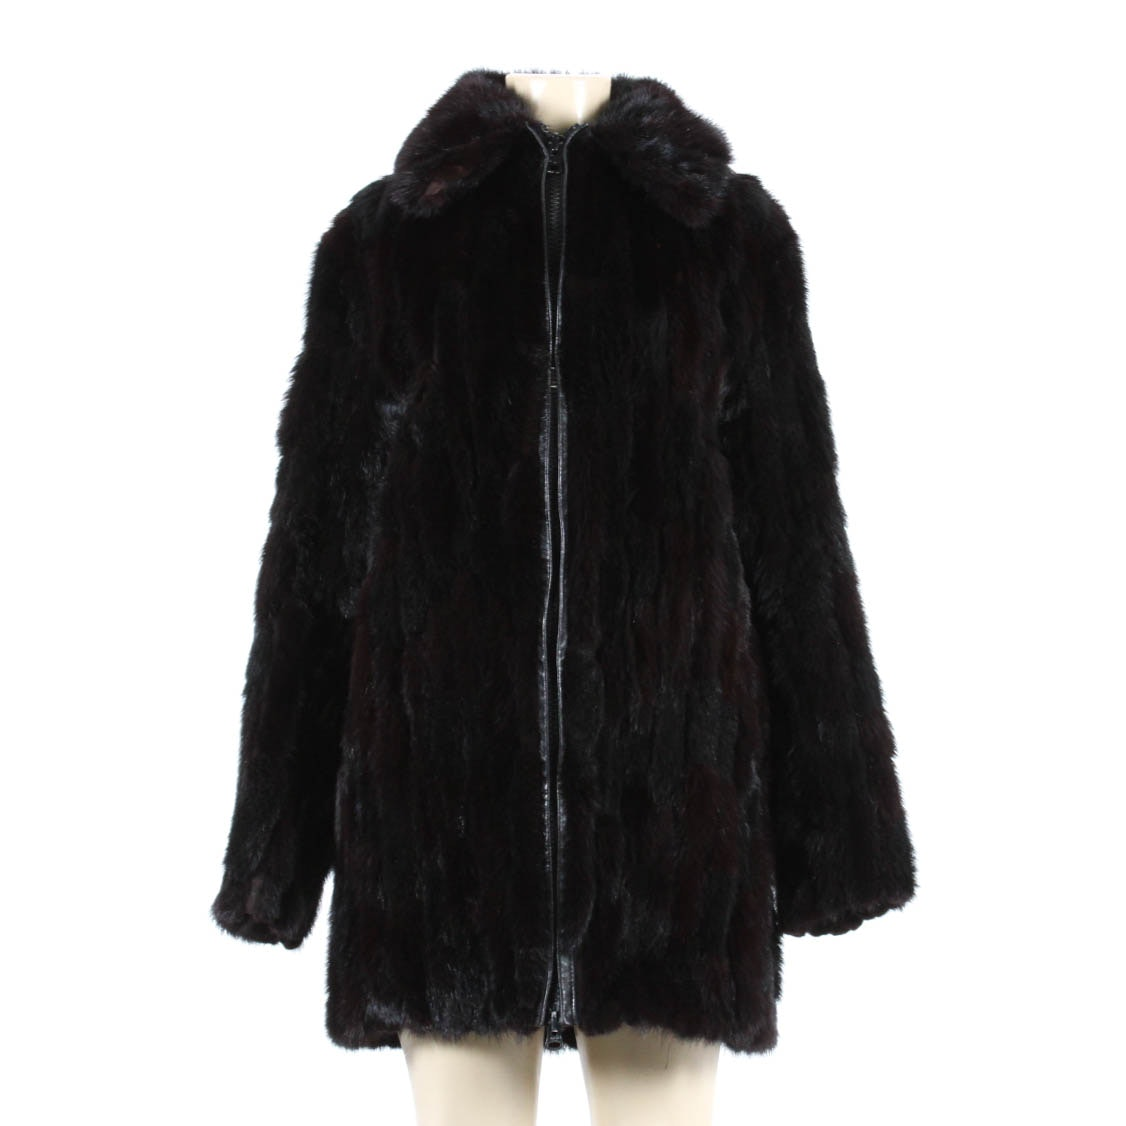 Kingsten Lee Black Ranch Mink Jacket